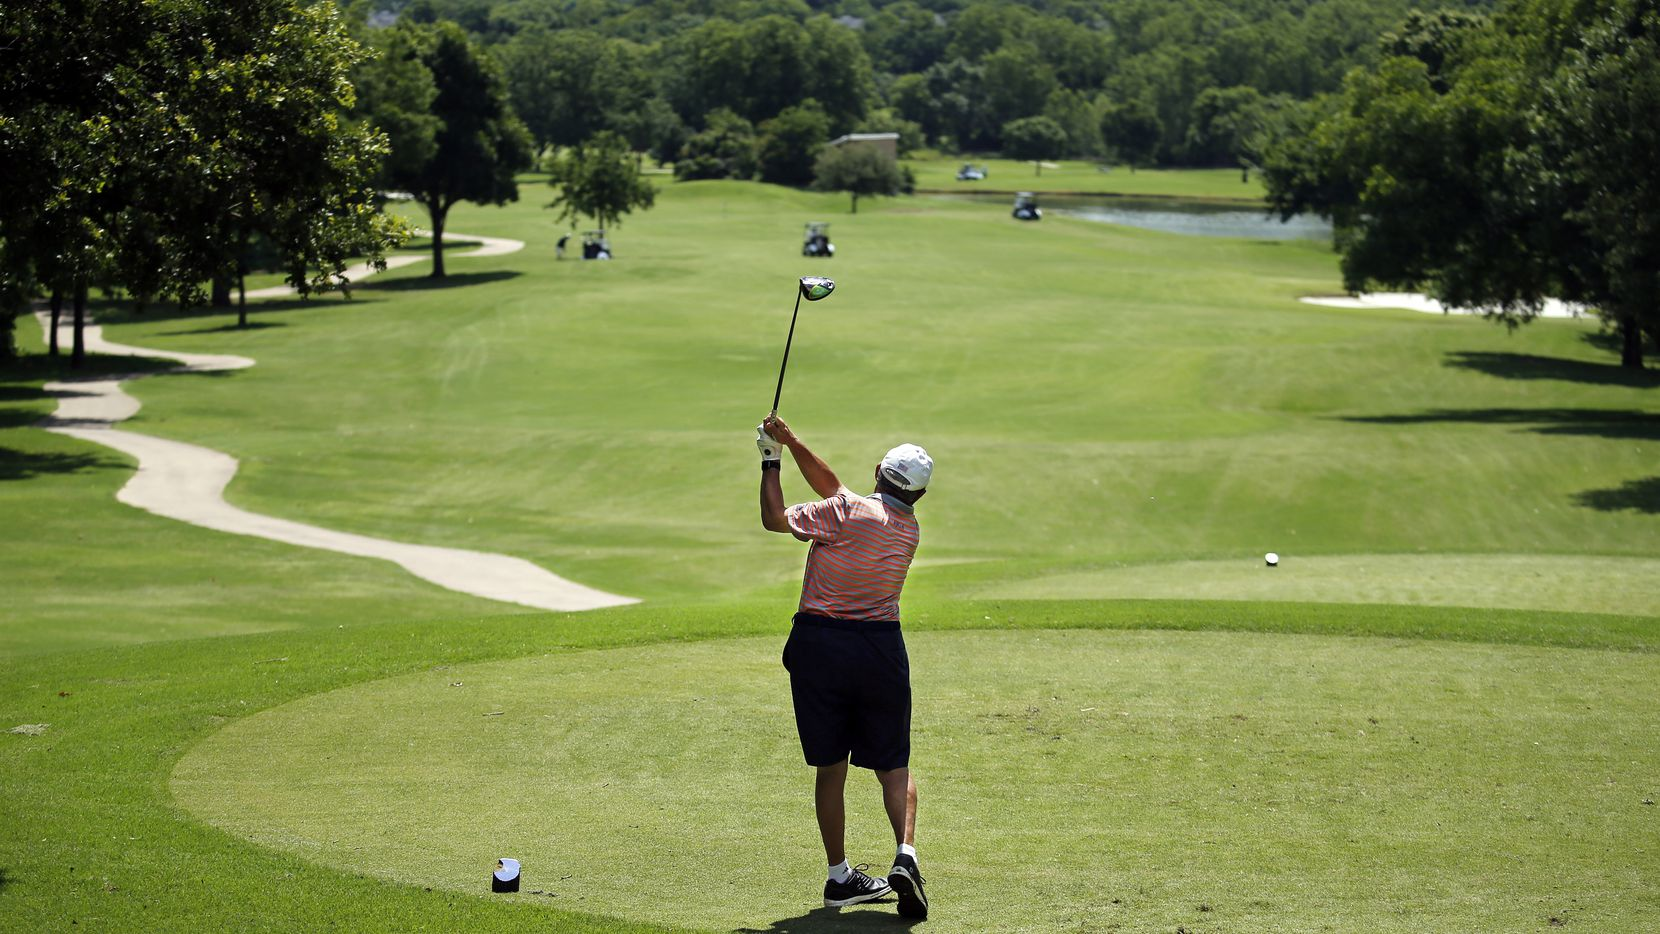 Grapevine Golf Course is debuting a new clubhouse and restaurant on Friday. (Tom Fox/The Dallas Morning News)